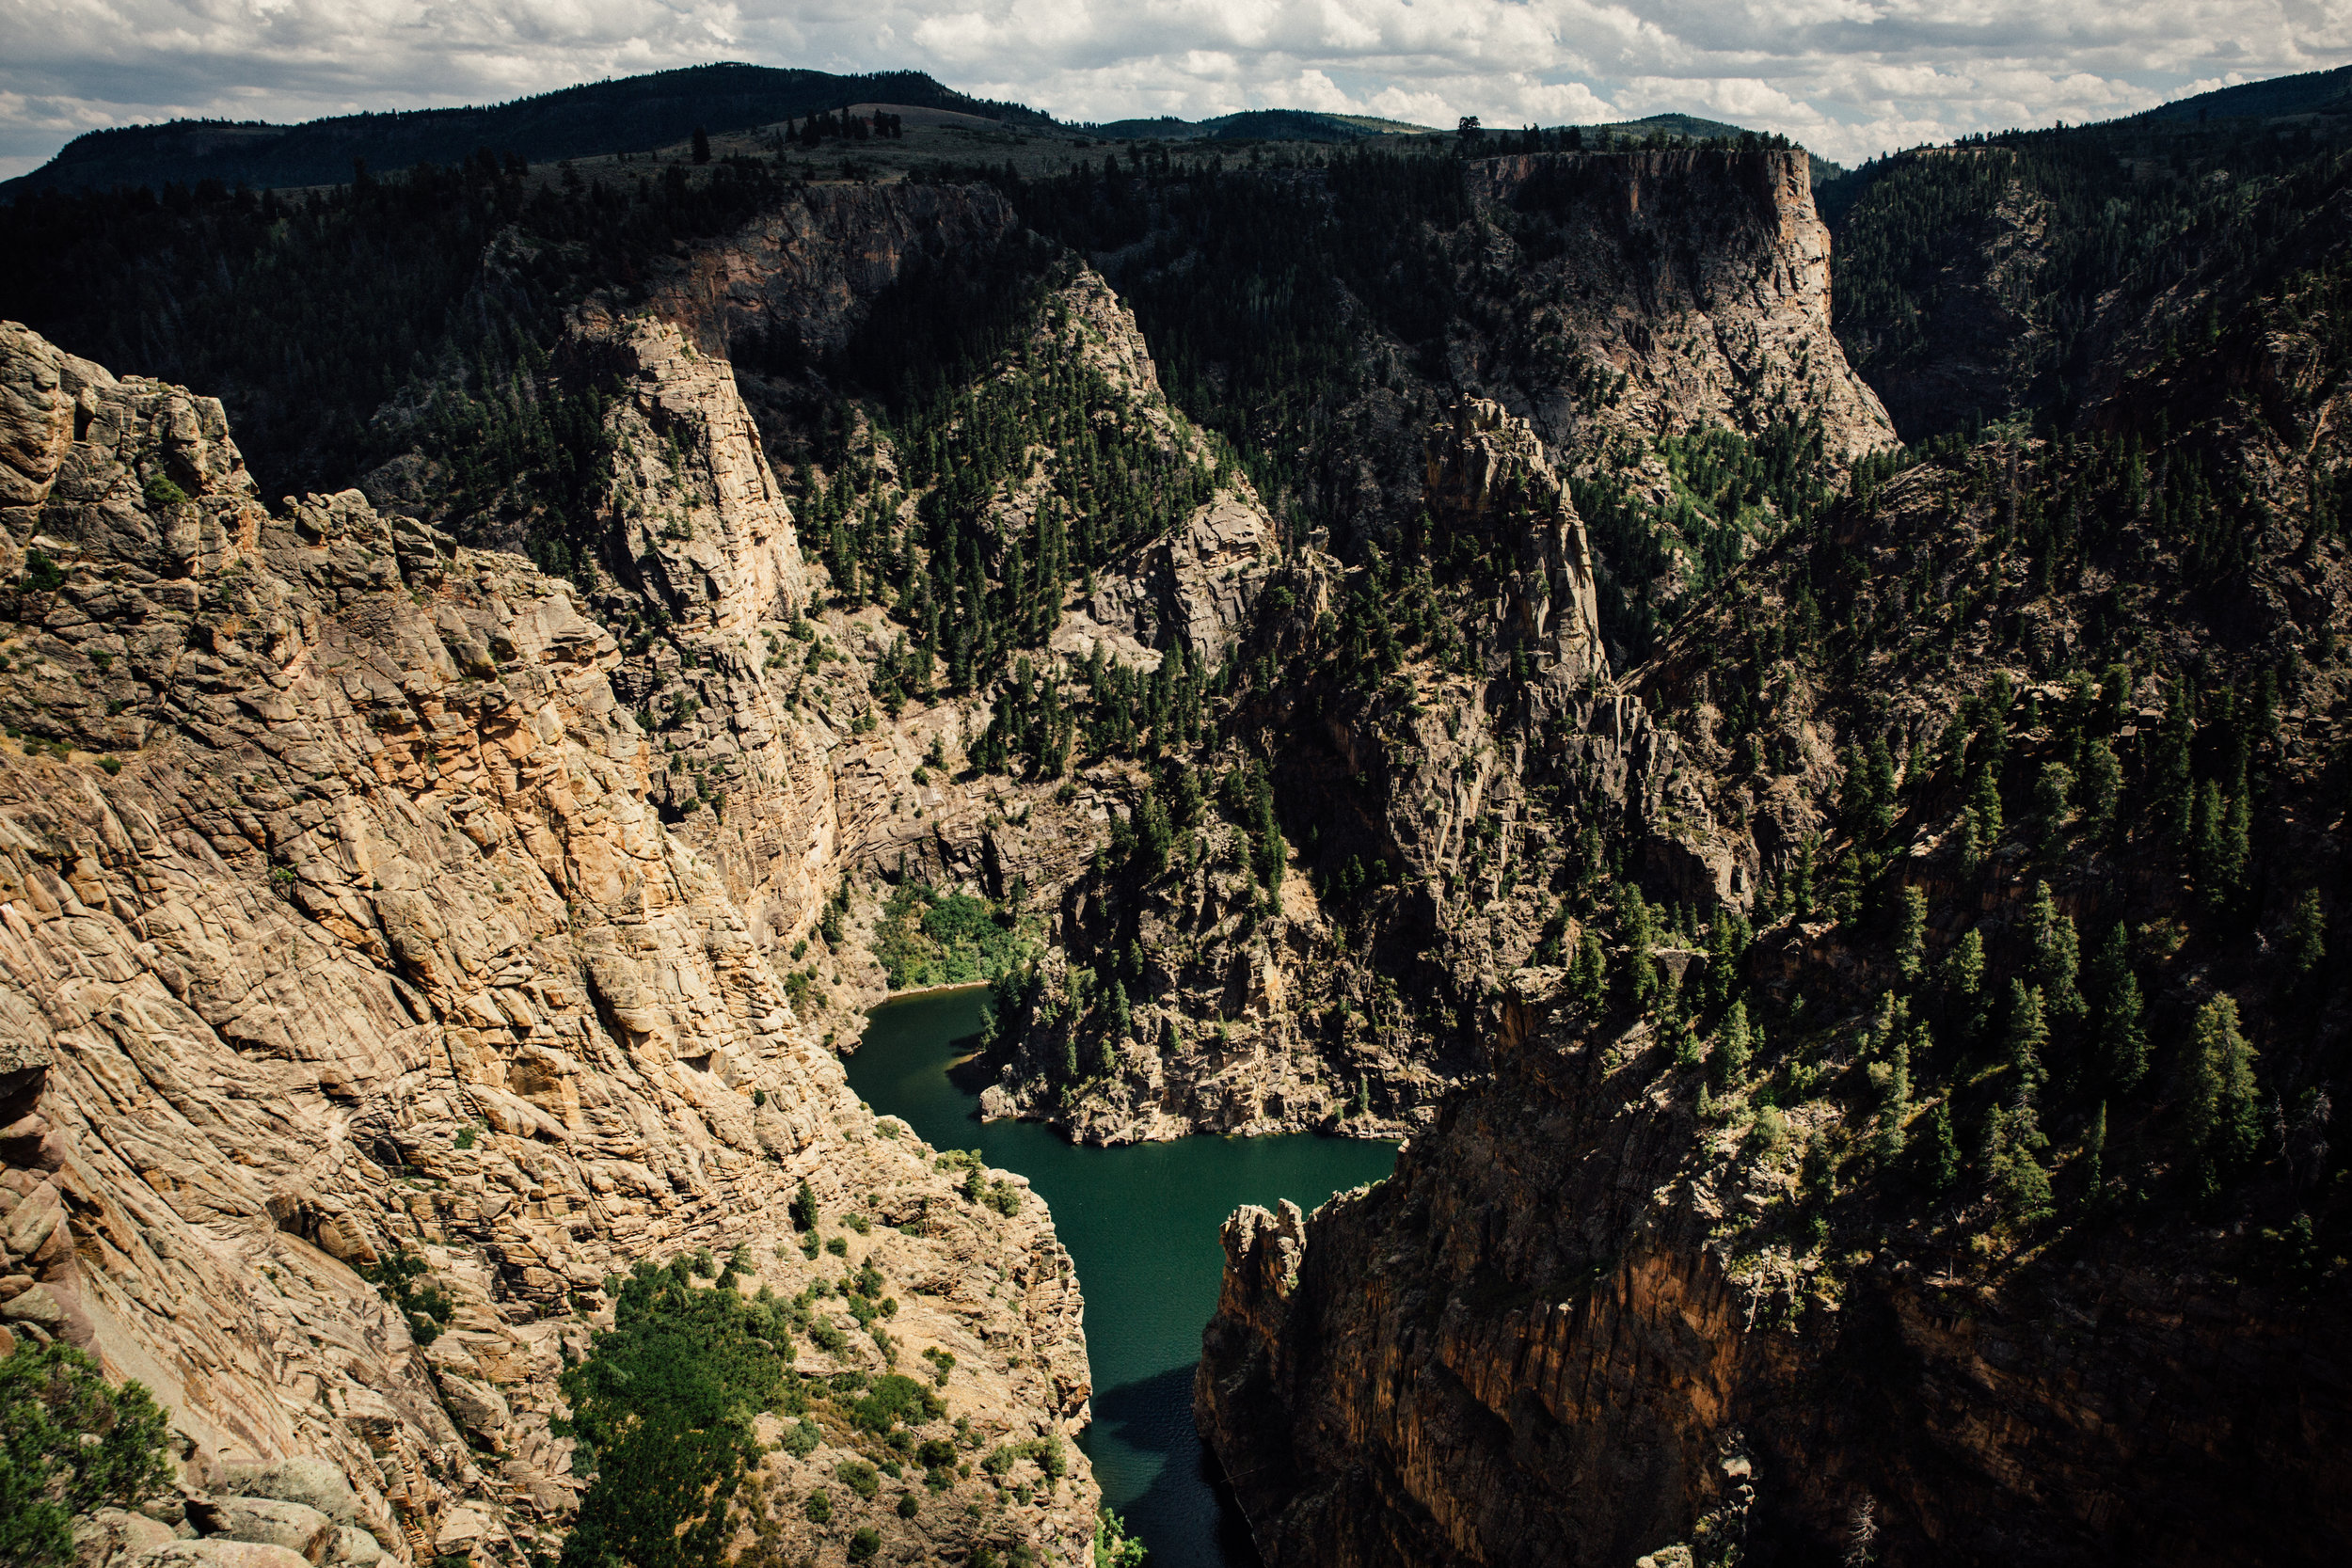 Gazing down on Morrow Point reservoir in the Upper Black Canyon of the Gunnison.